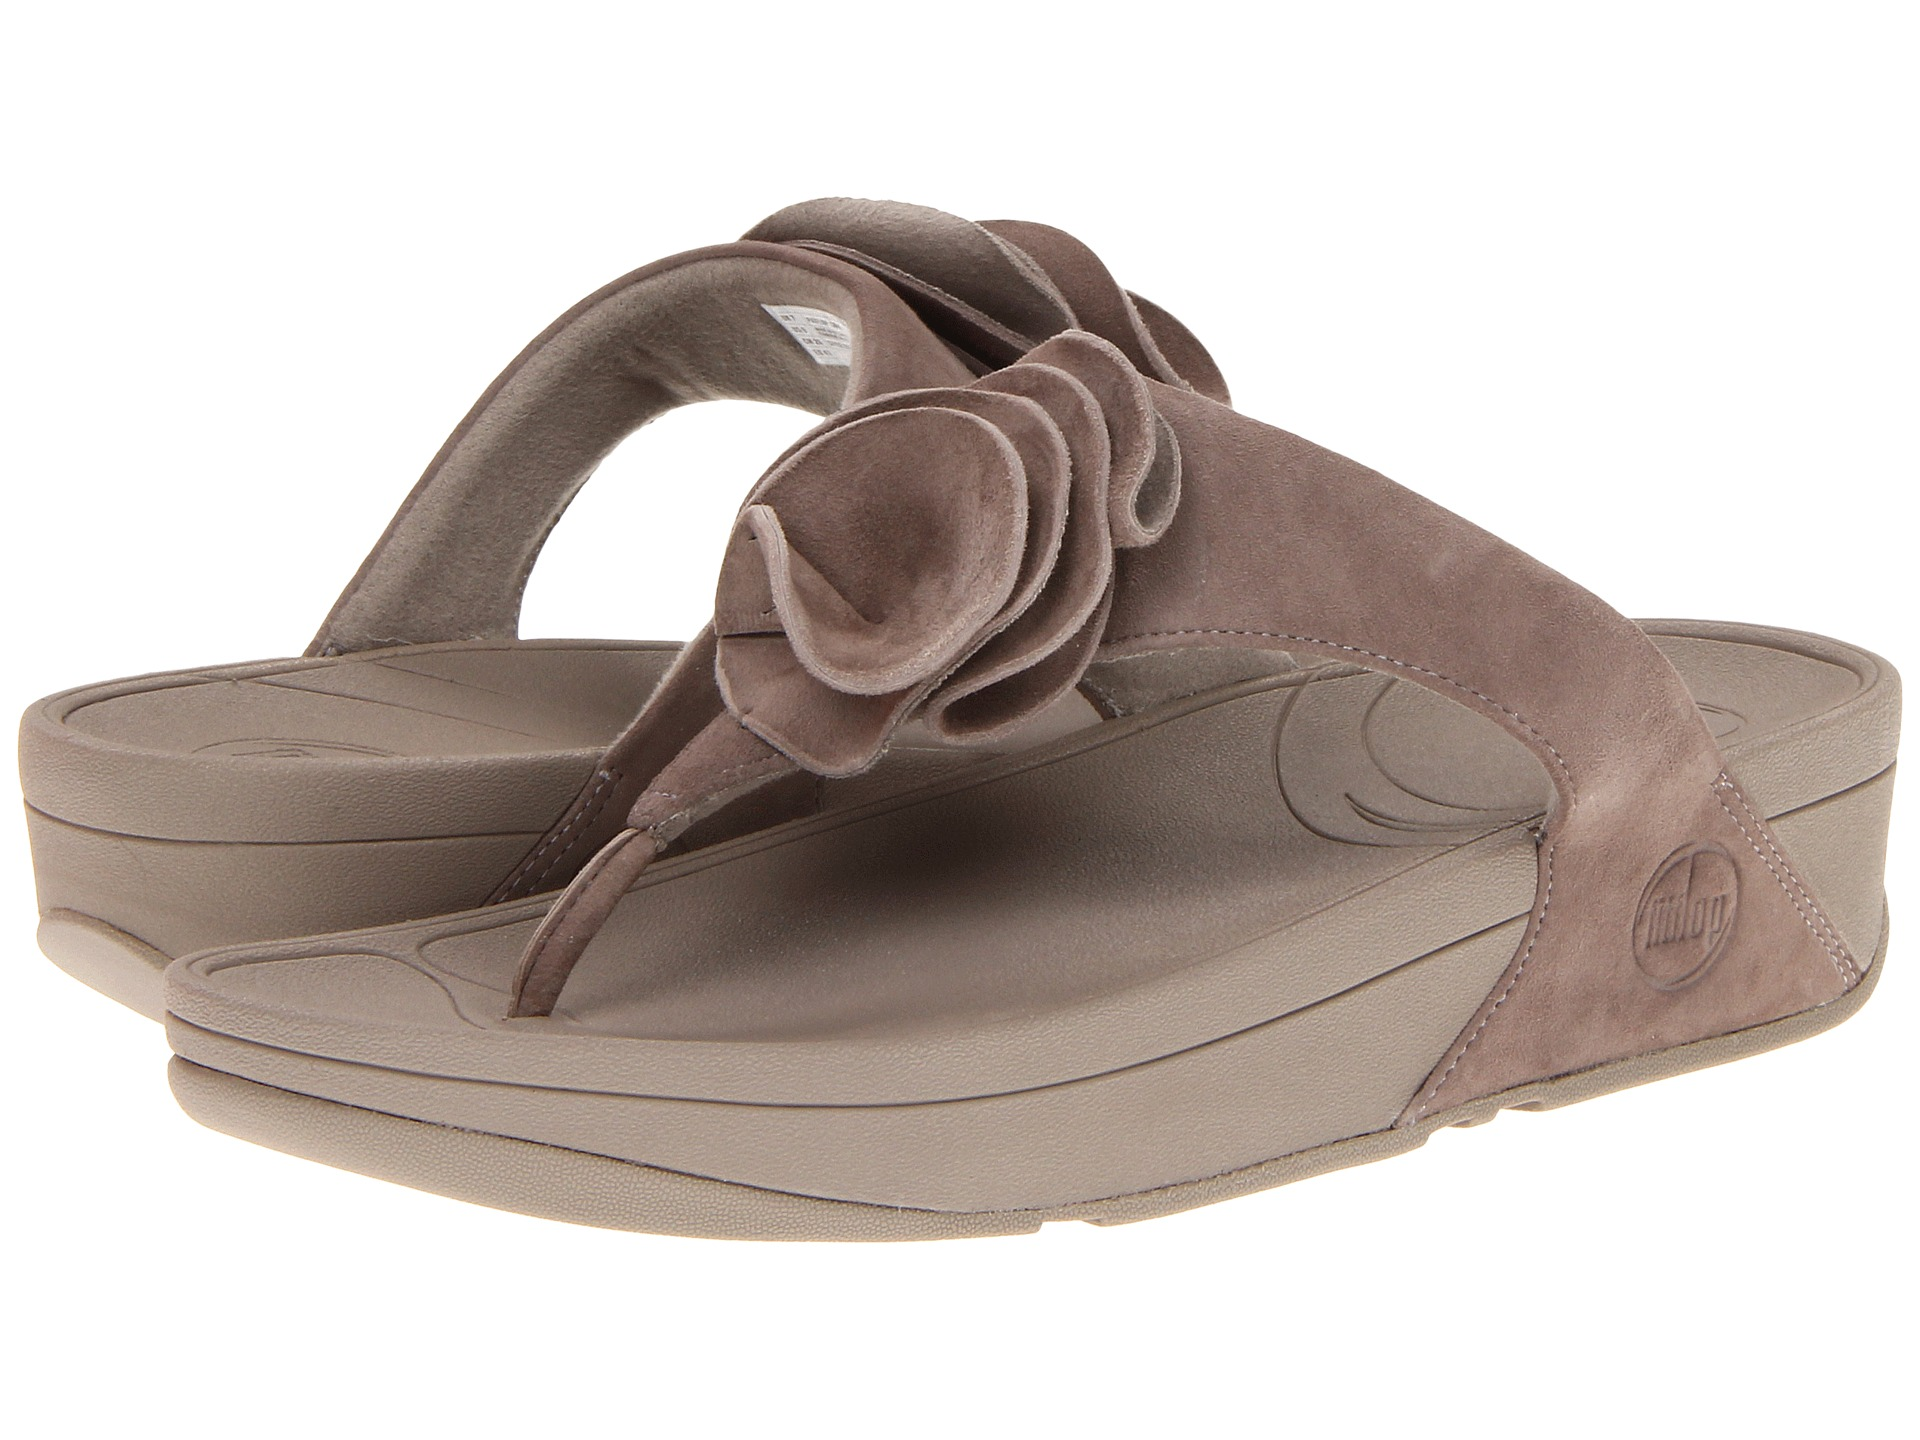 0d3325eb83b4 No results for fitflop yoko - Search Zappos